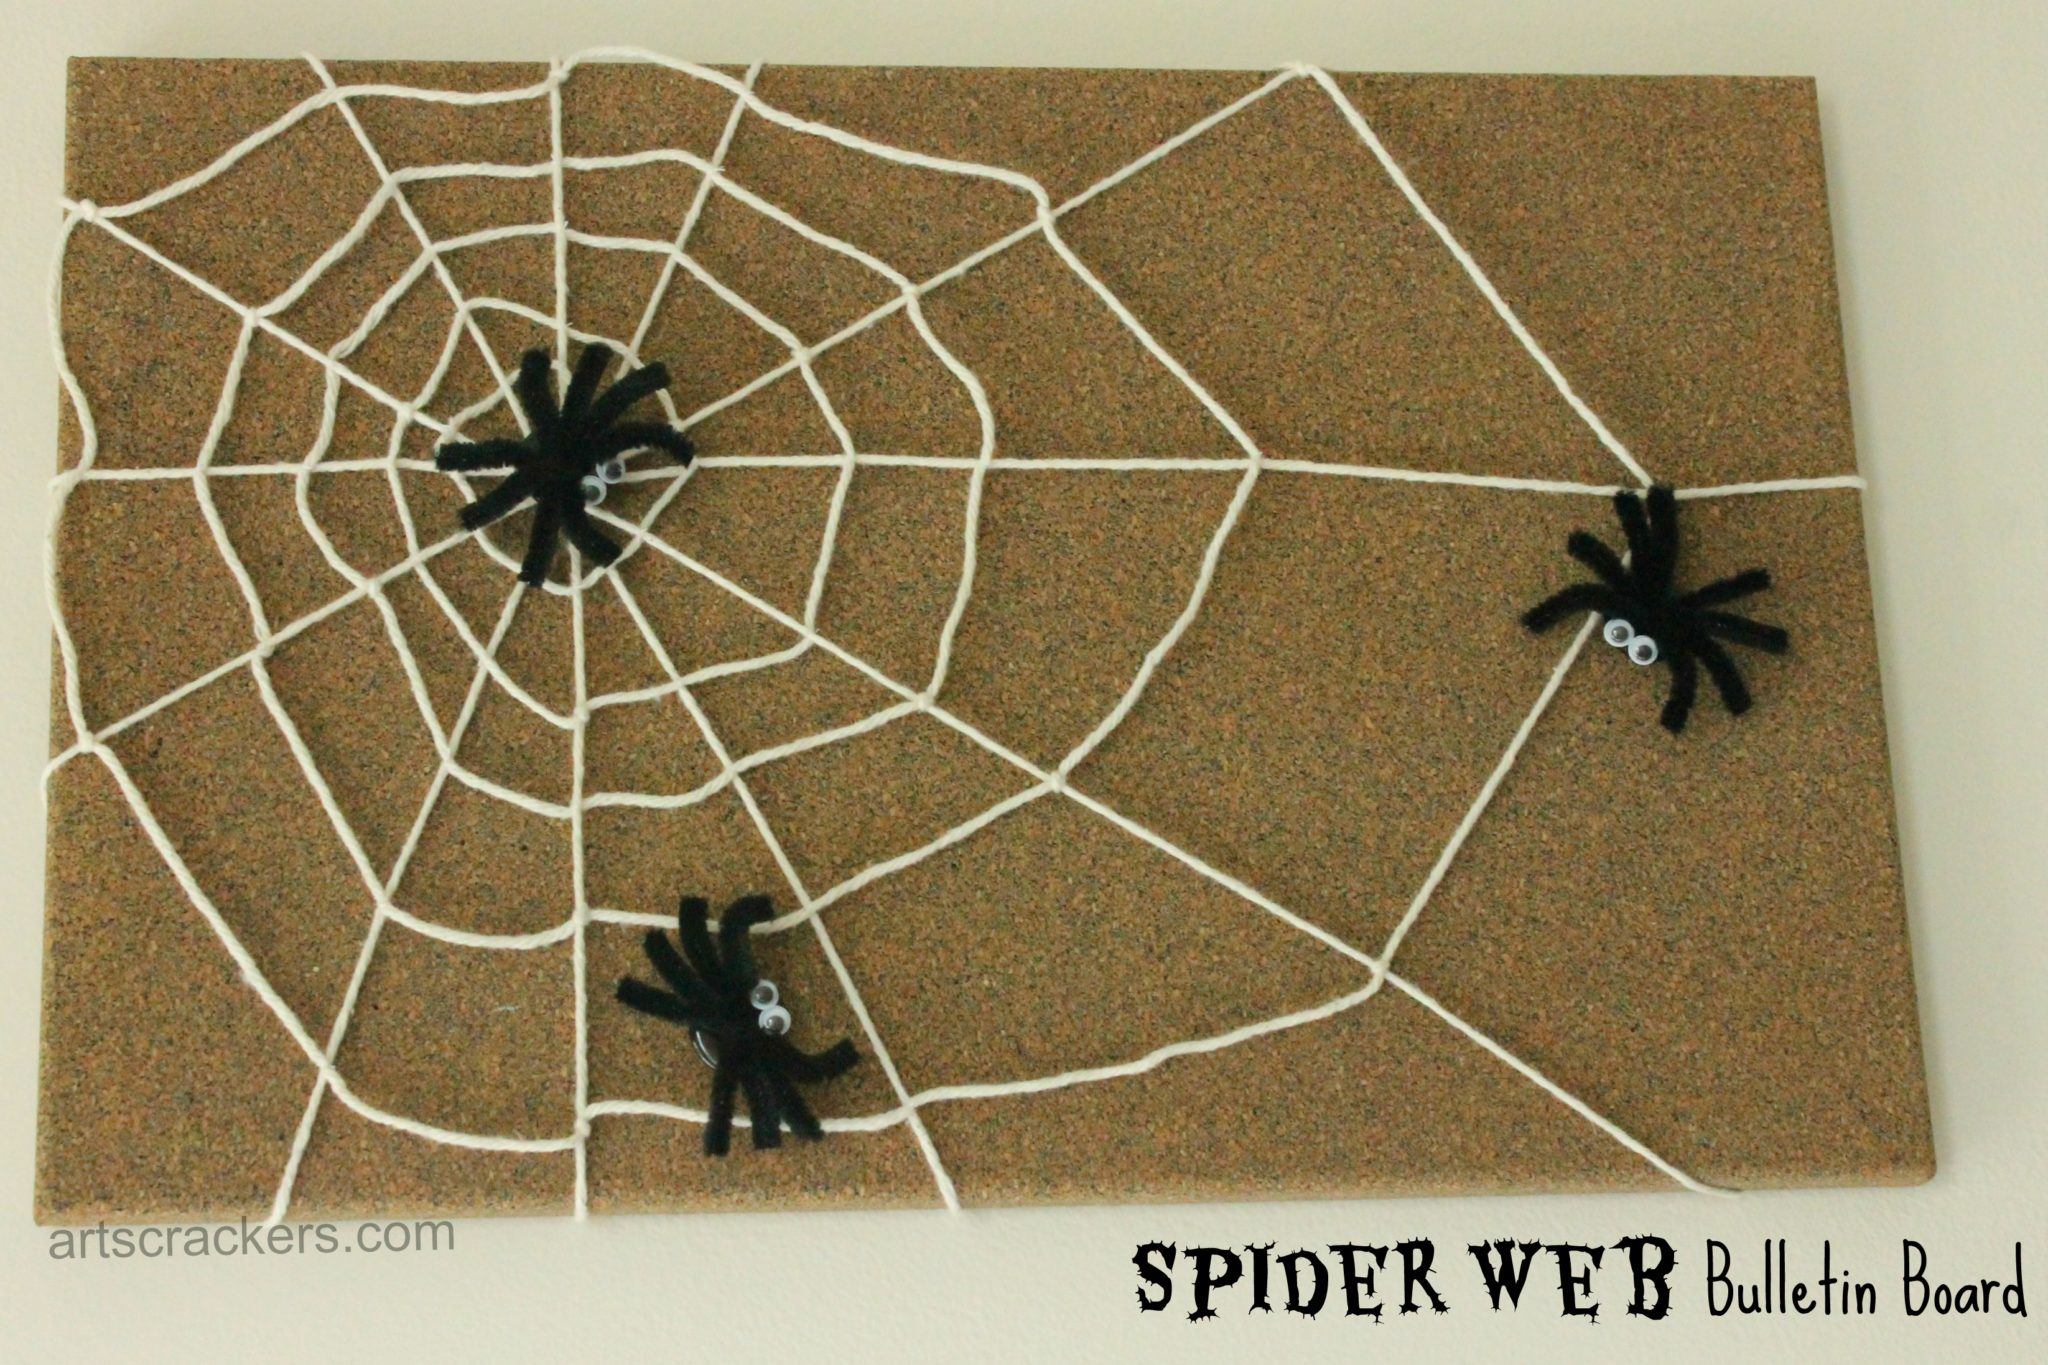 Spiders and Web Bulletin Cork Board